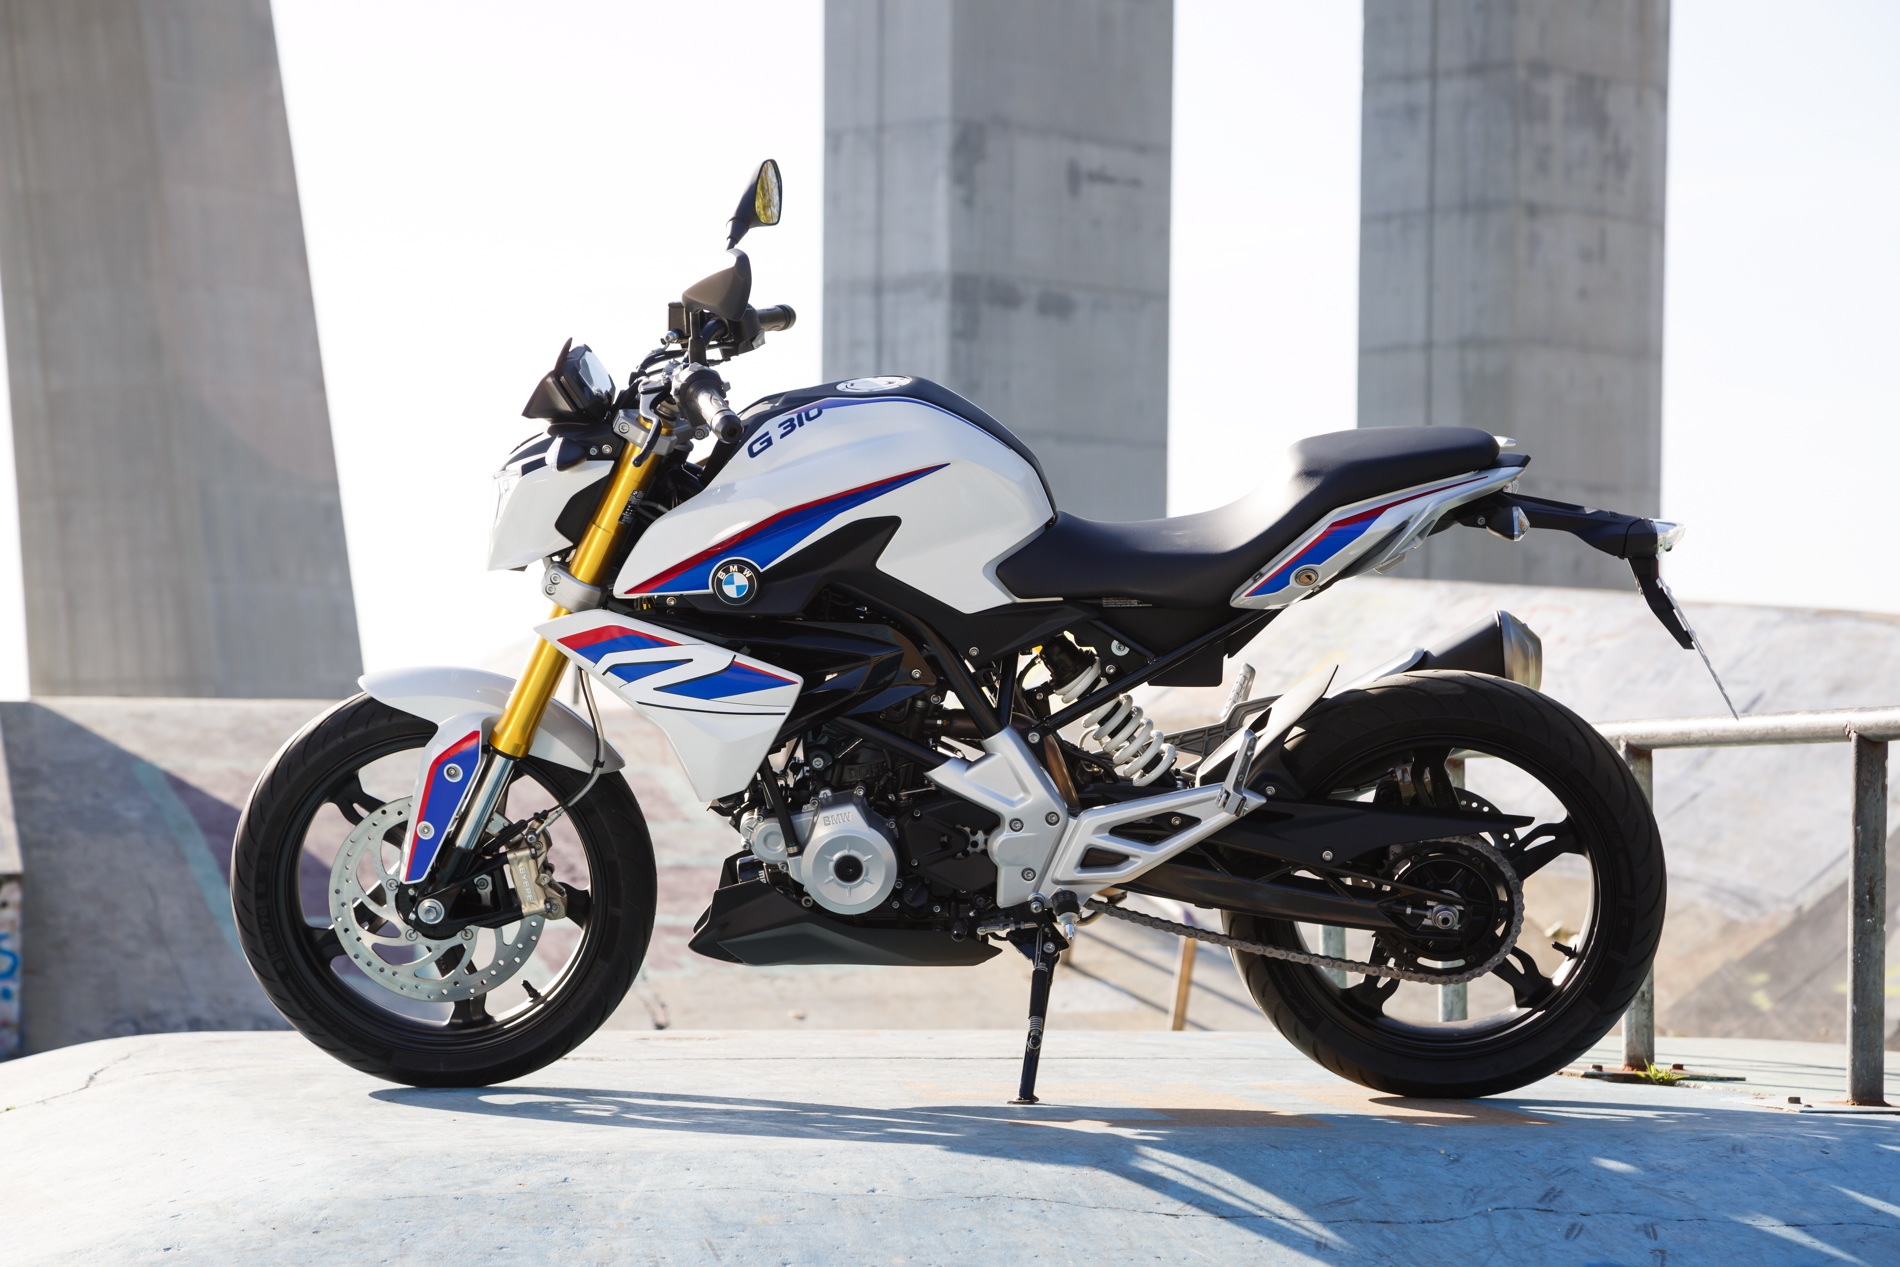 BMW G 310 R shown here